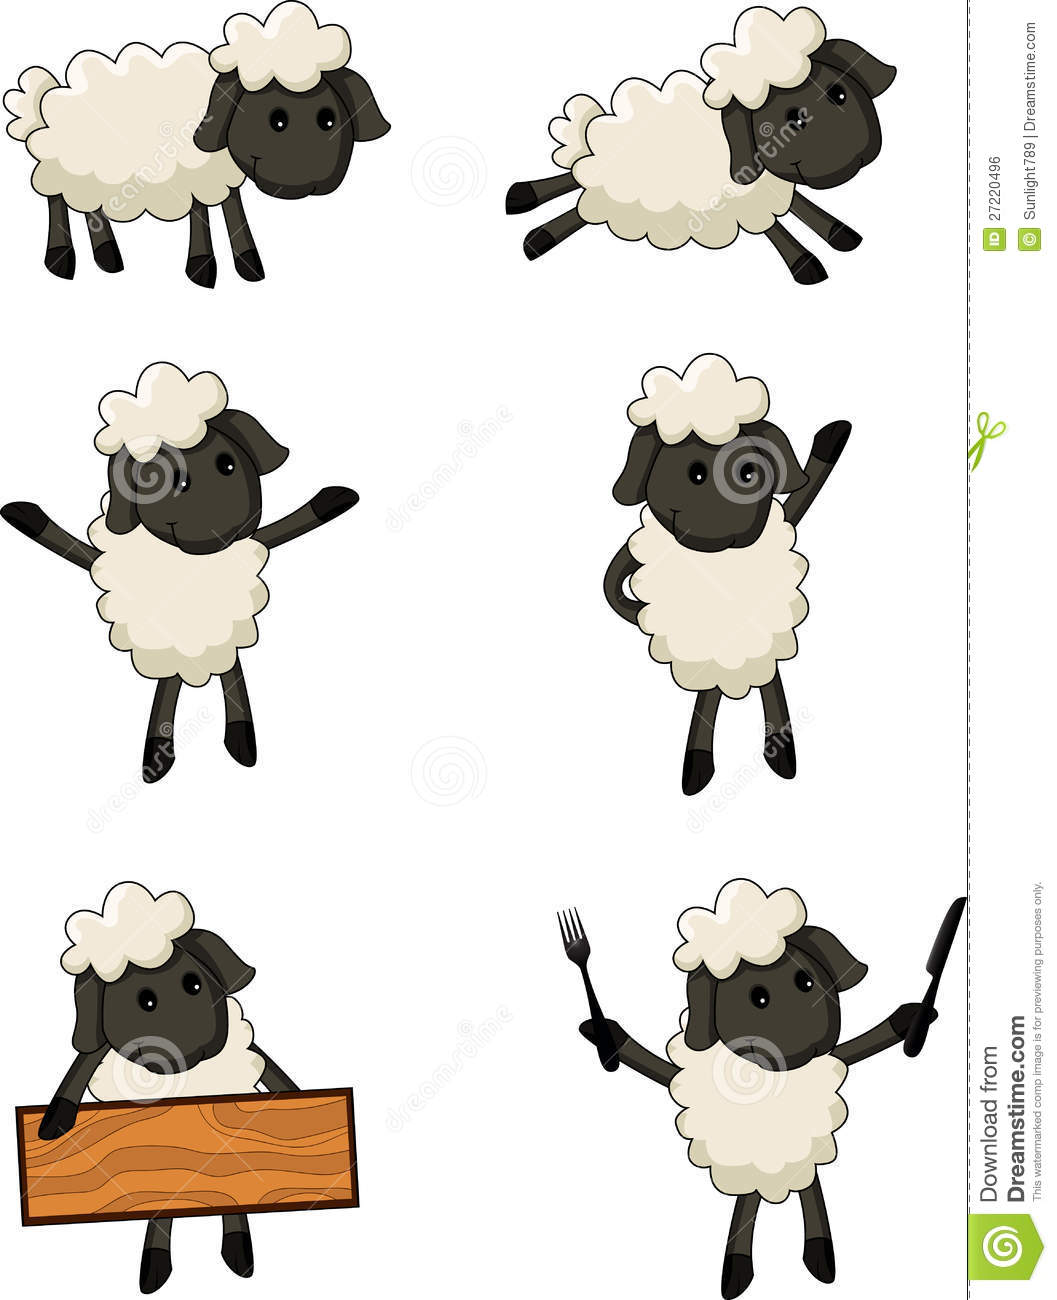 Sheep Cartoon Character Royalty Free Stock Image - Image: 27220496